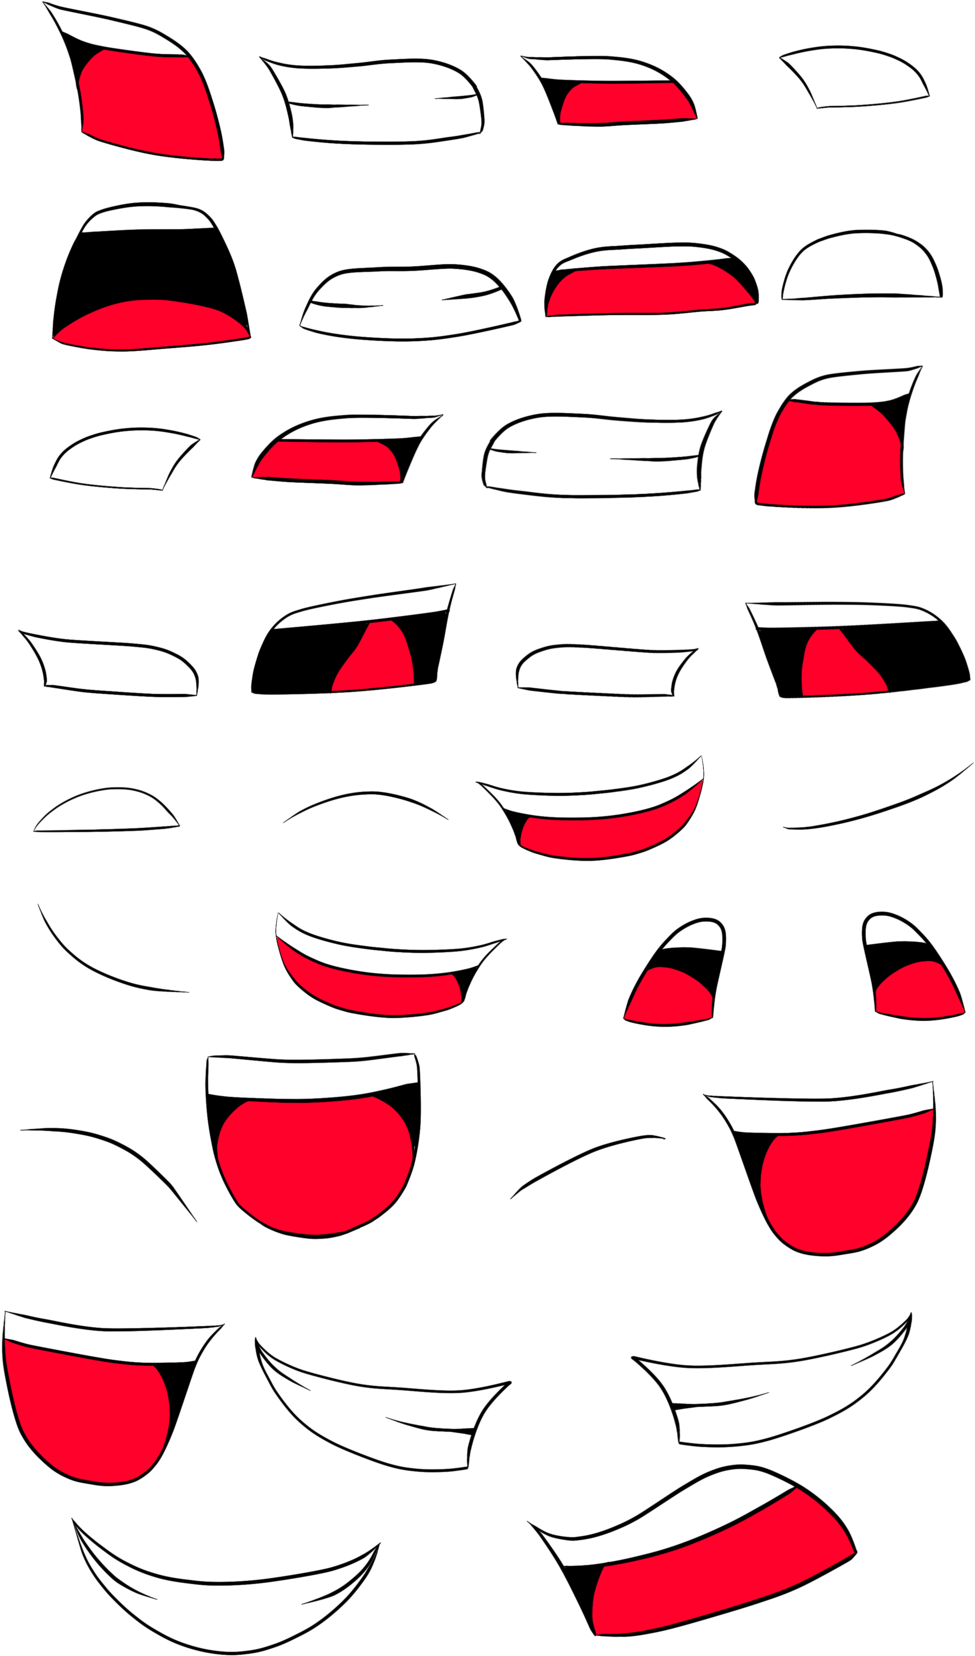 Anime mouth png. Download for free on